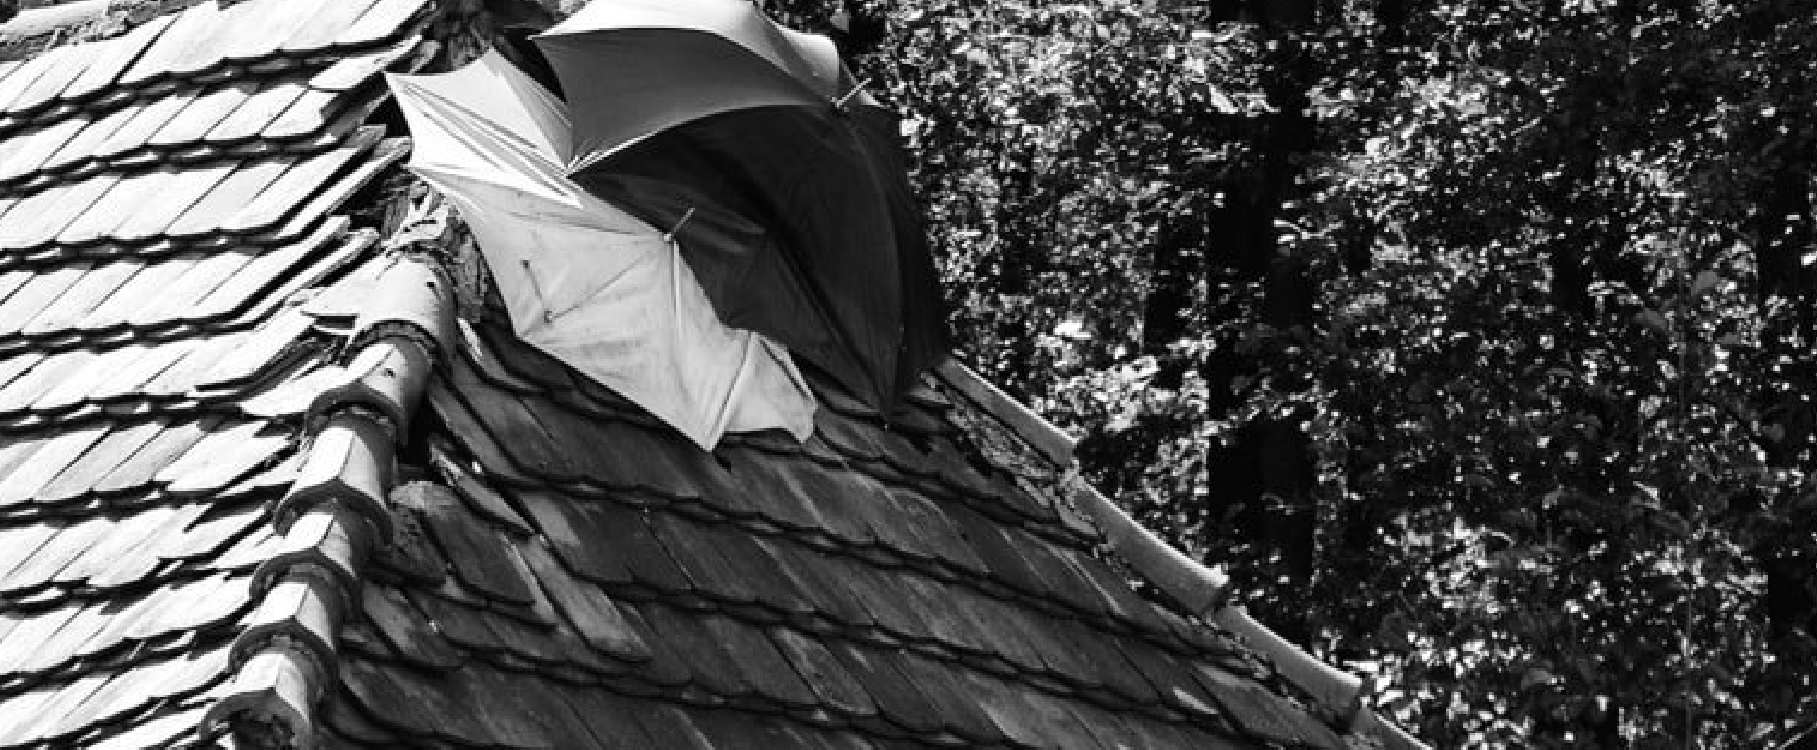 Blog 2roofing image